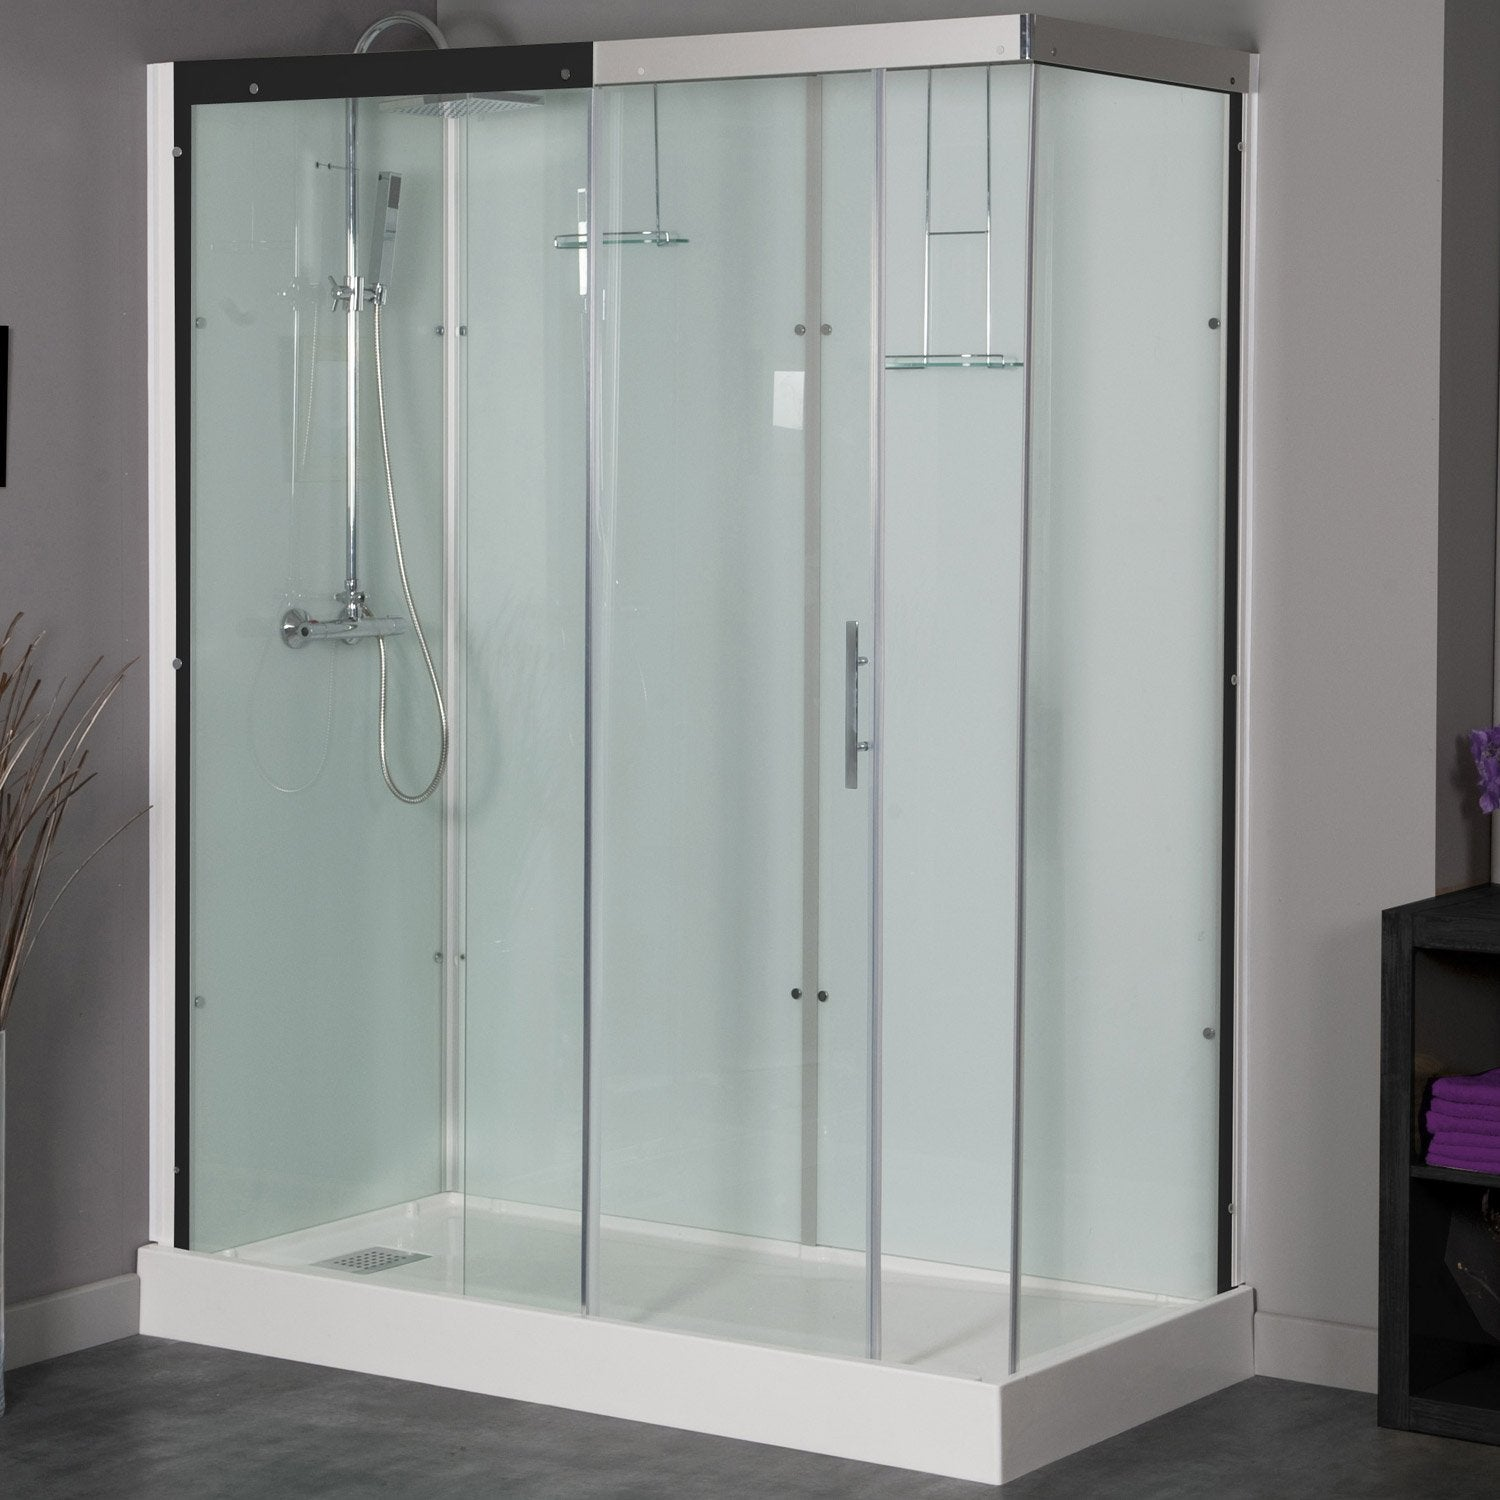 cool cabine de douche x cm thalaglass thermo with douche. Black Bedroom Furniture Sets. Home Design Ideas